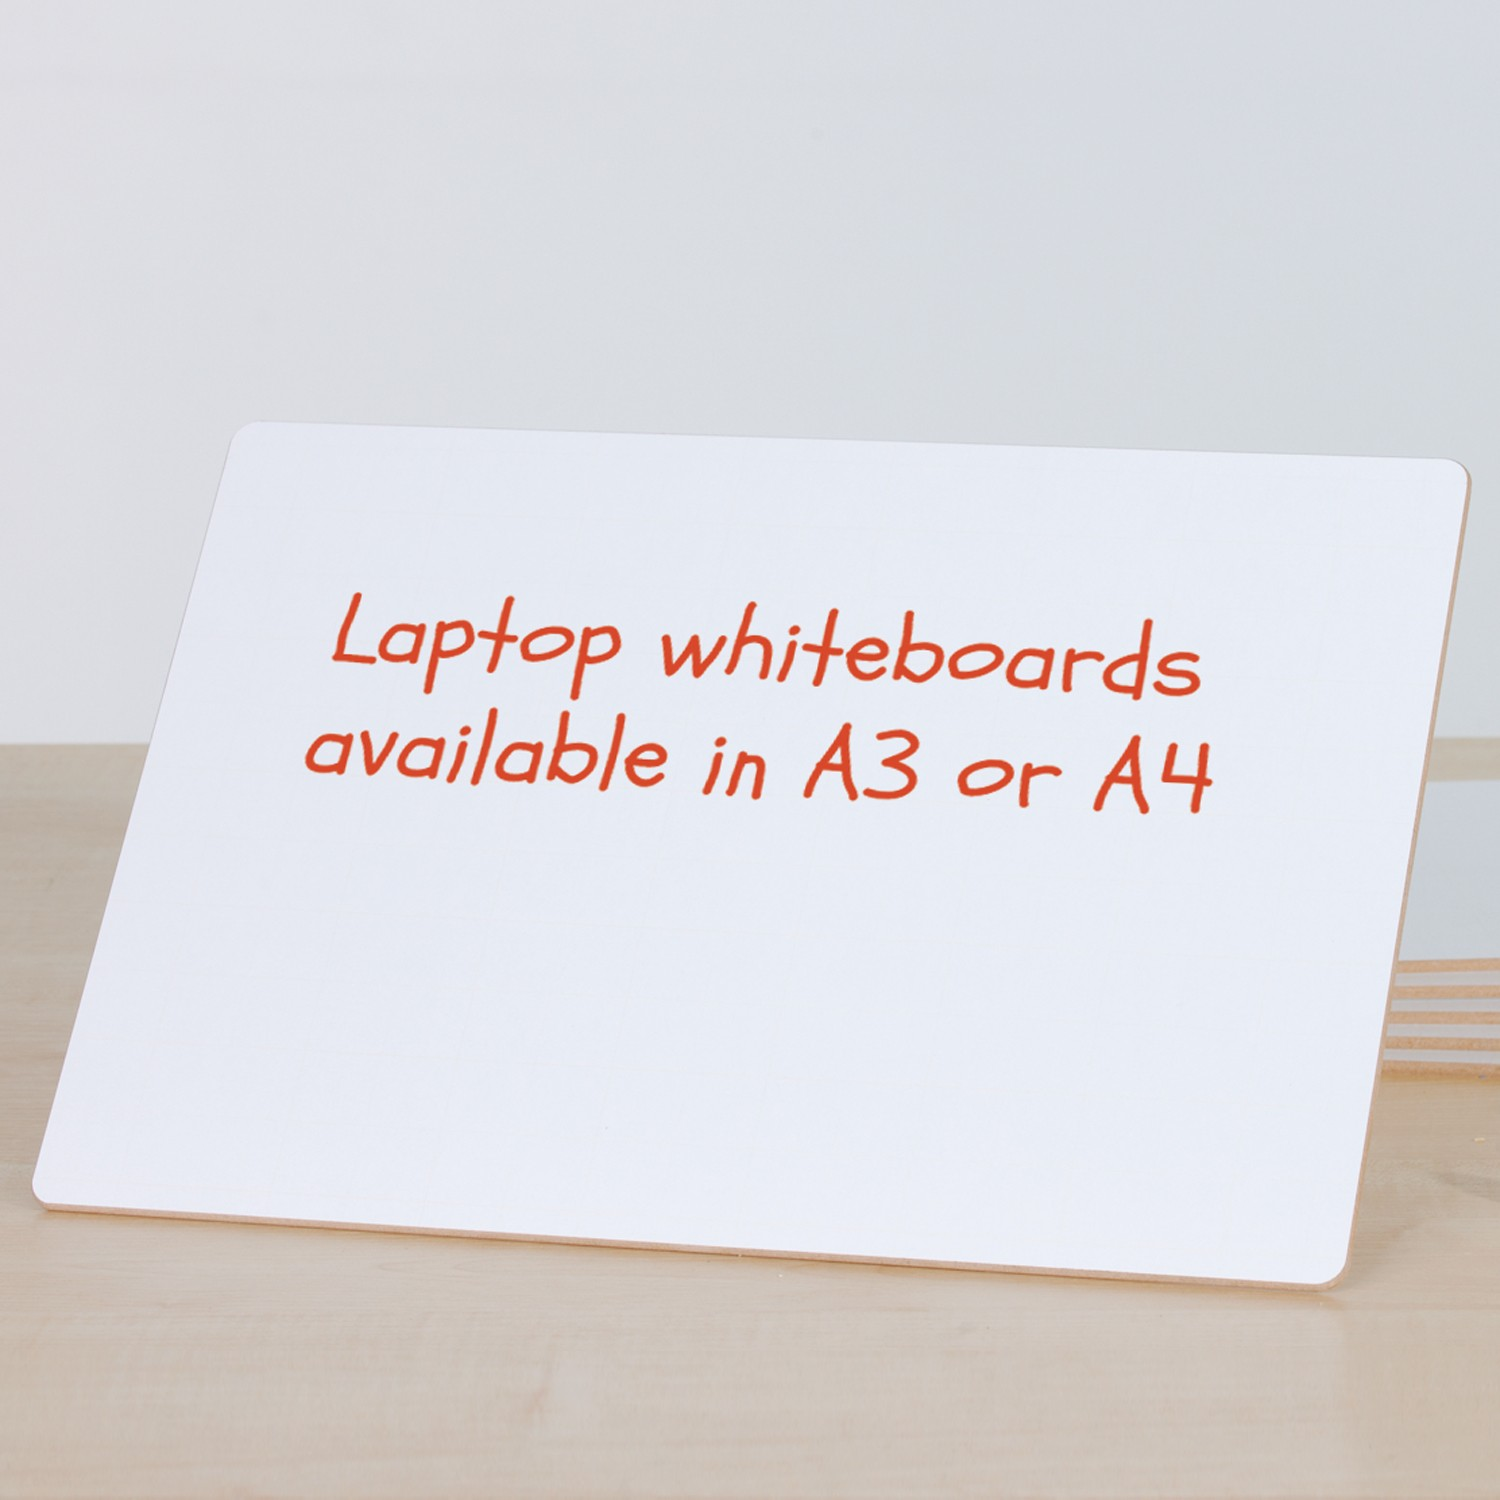 laptop_whiteboards